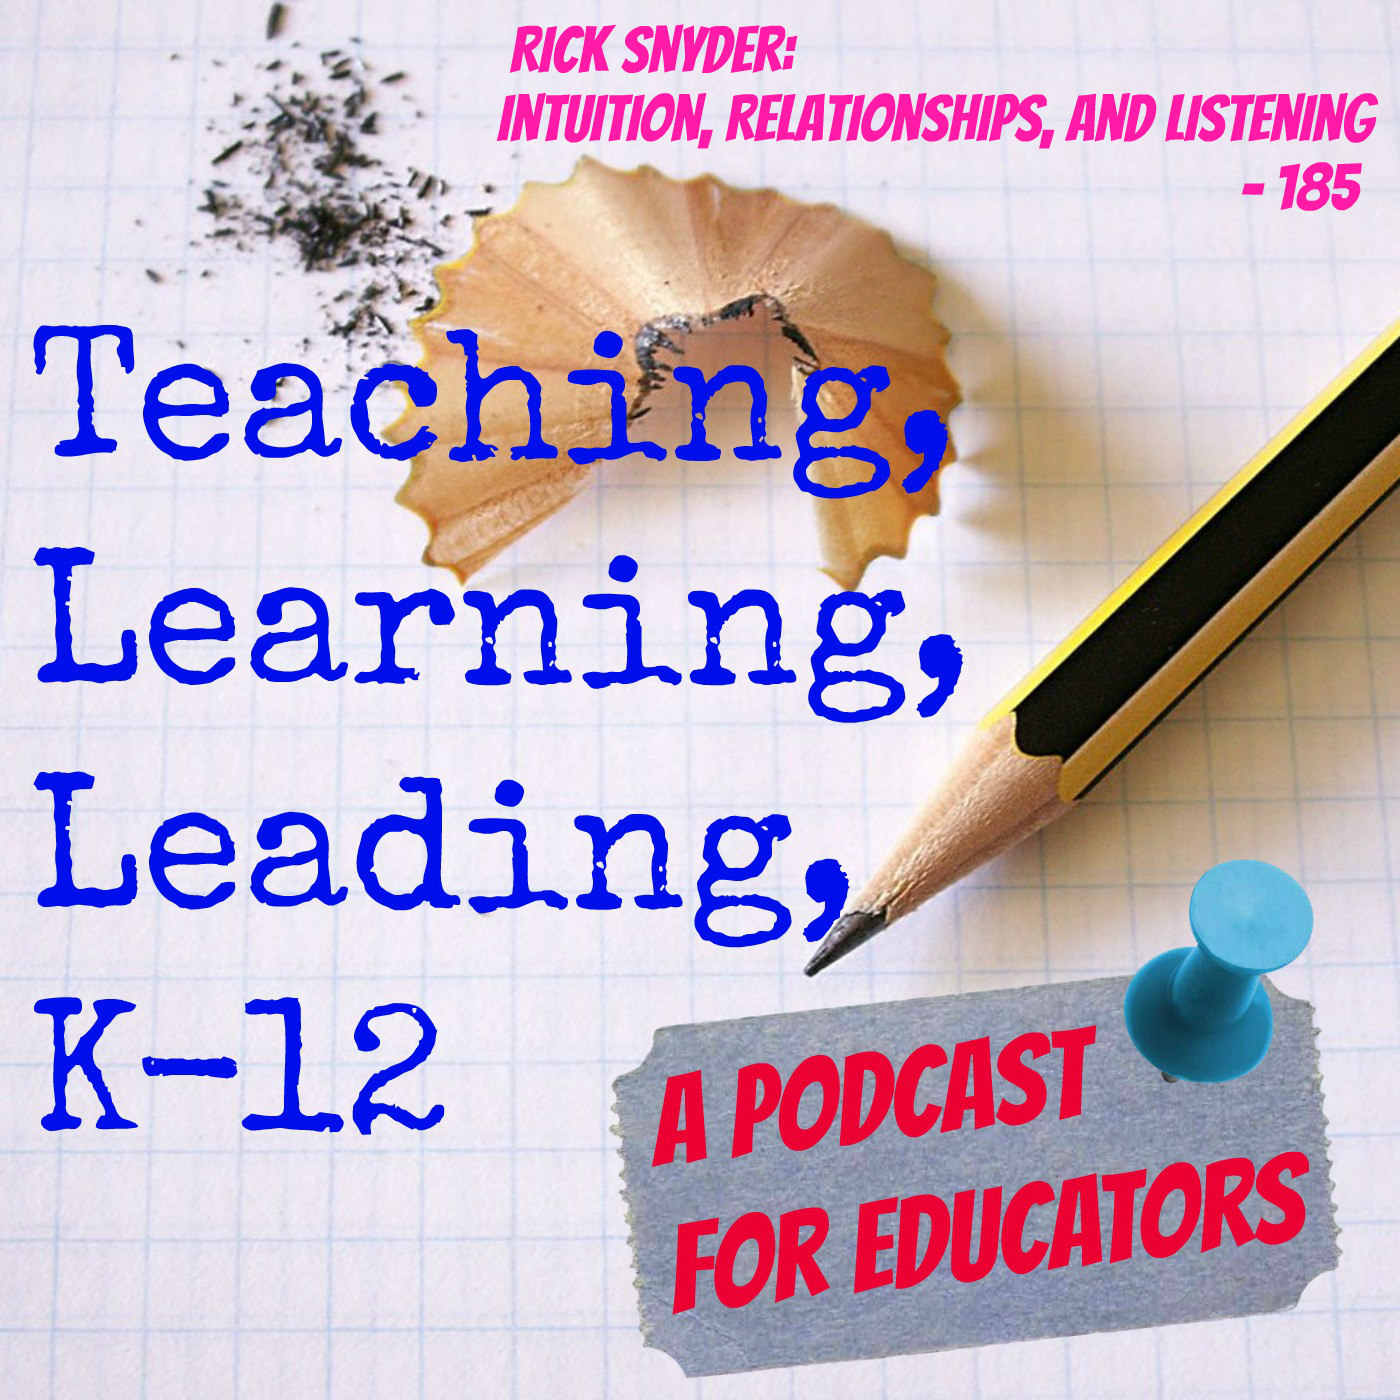 Rick Snyder: Intuition, Relationships, and Listening - 185